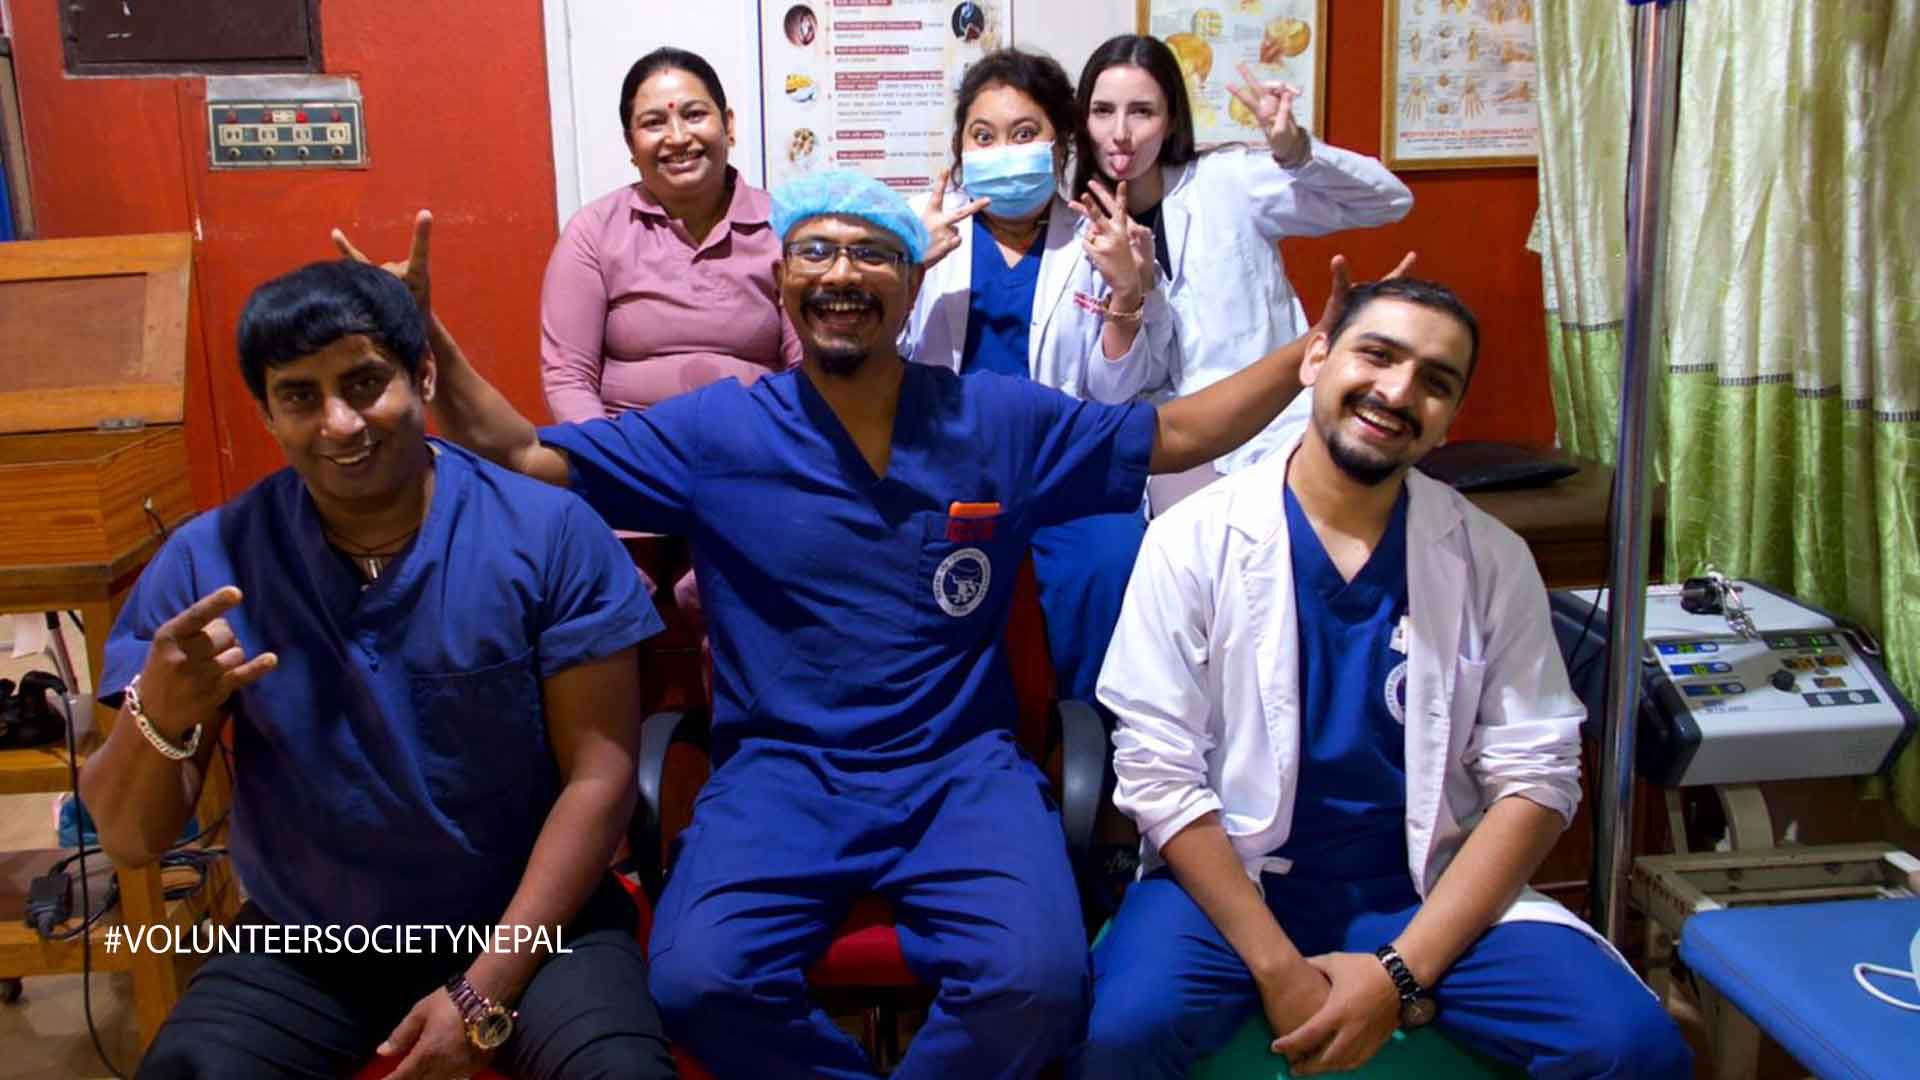 physiotherapy volunteering work in nepali hospital erica boland